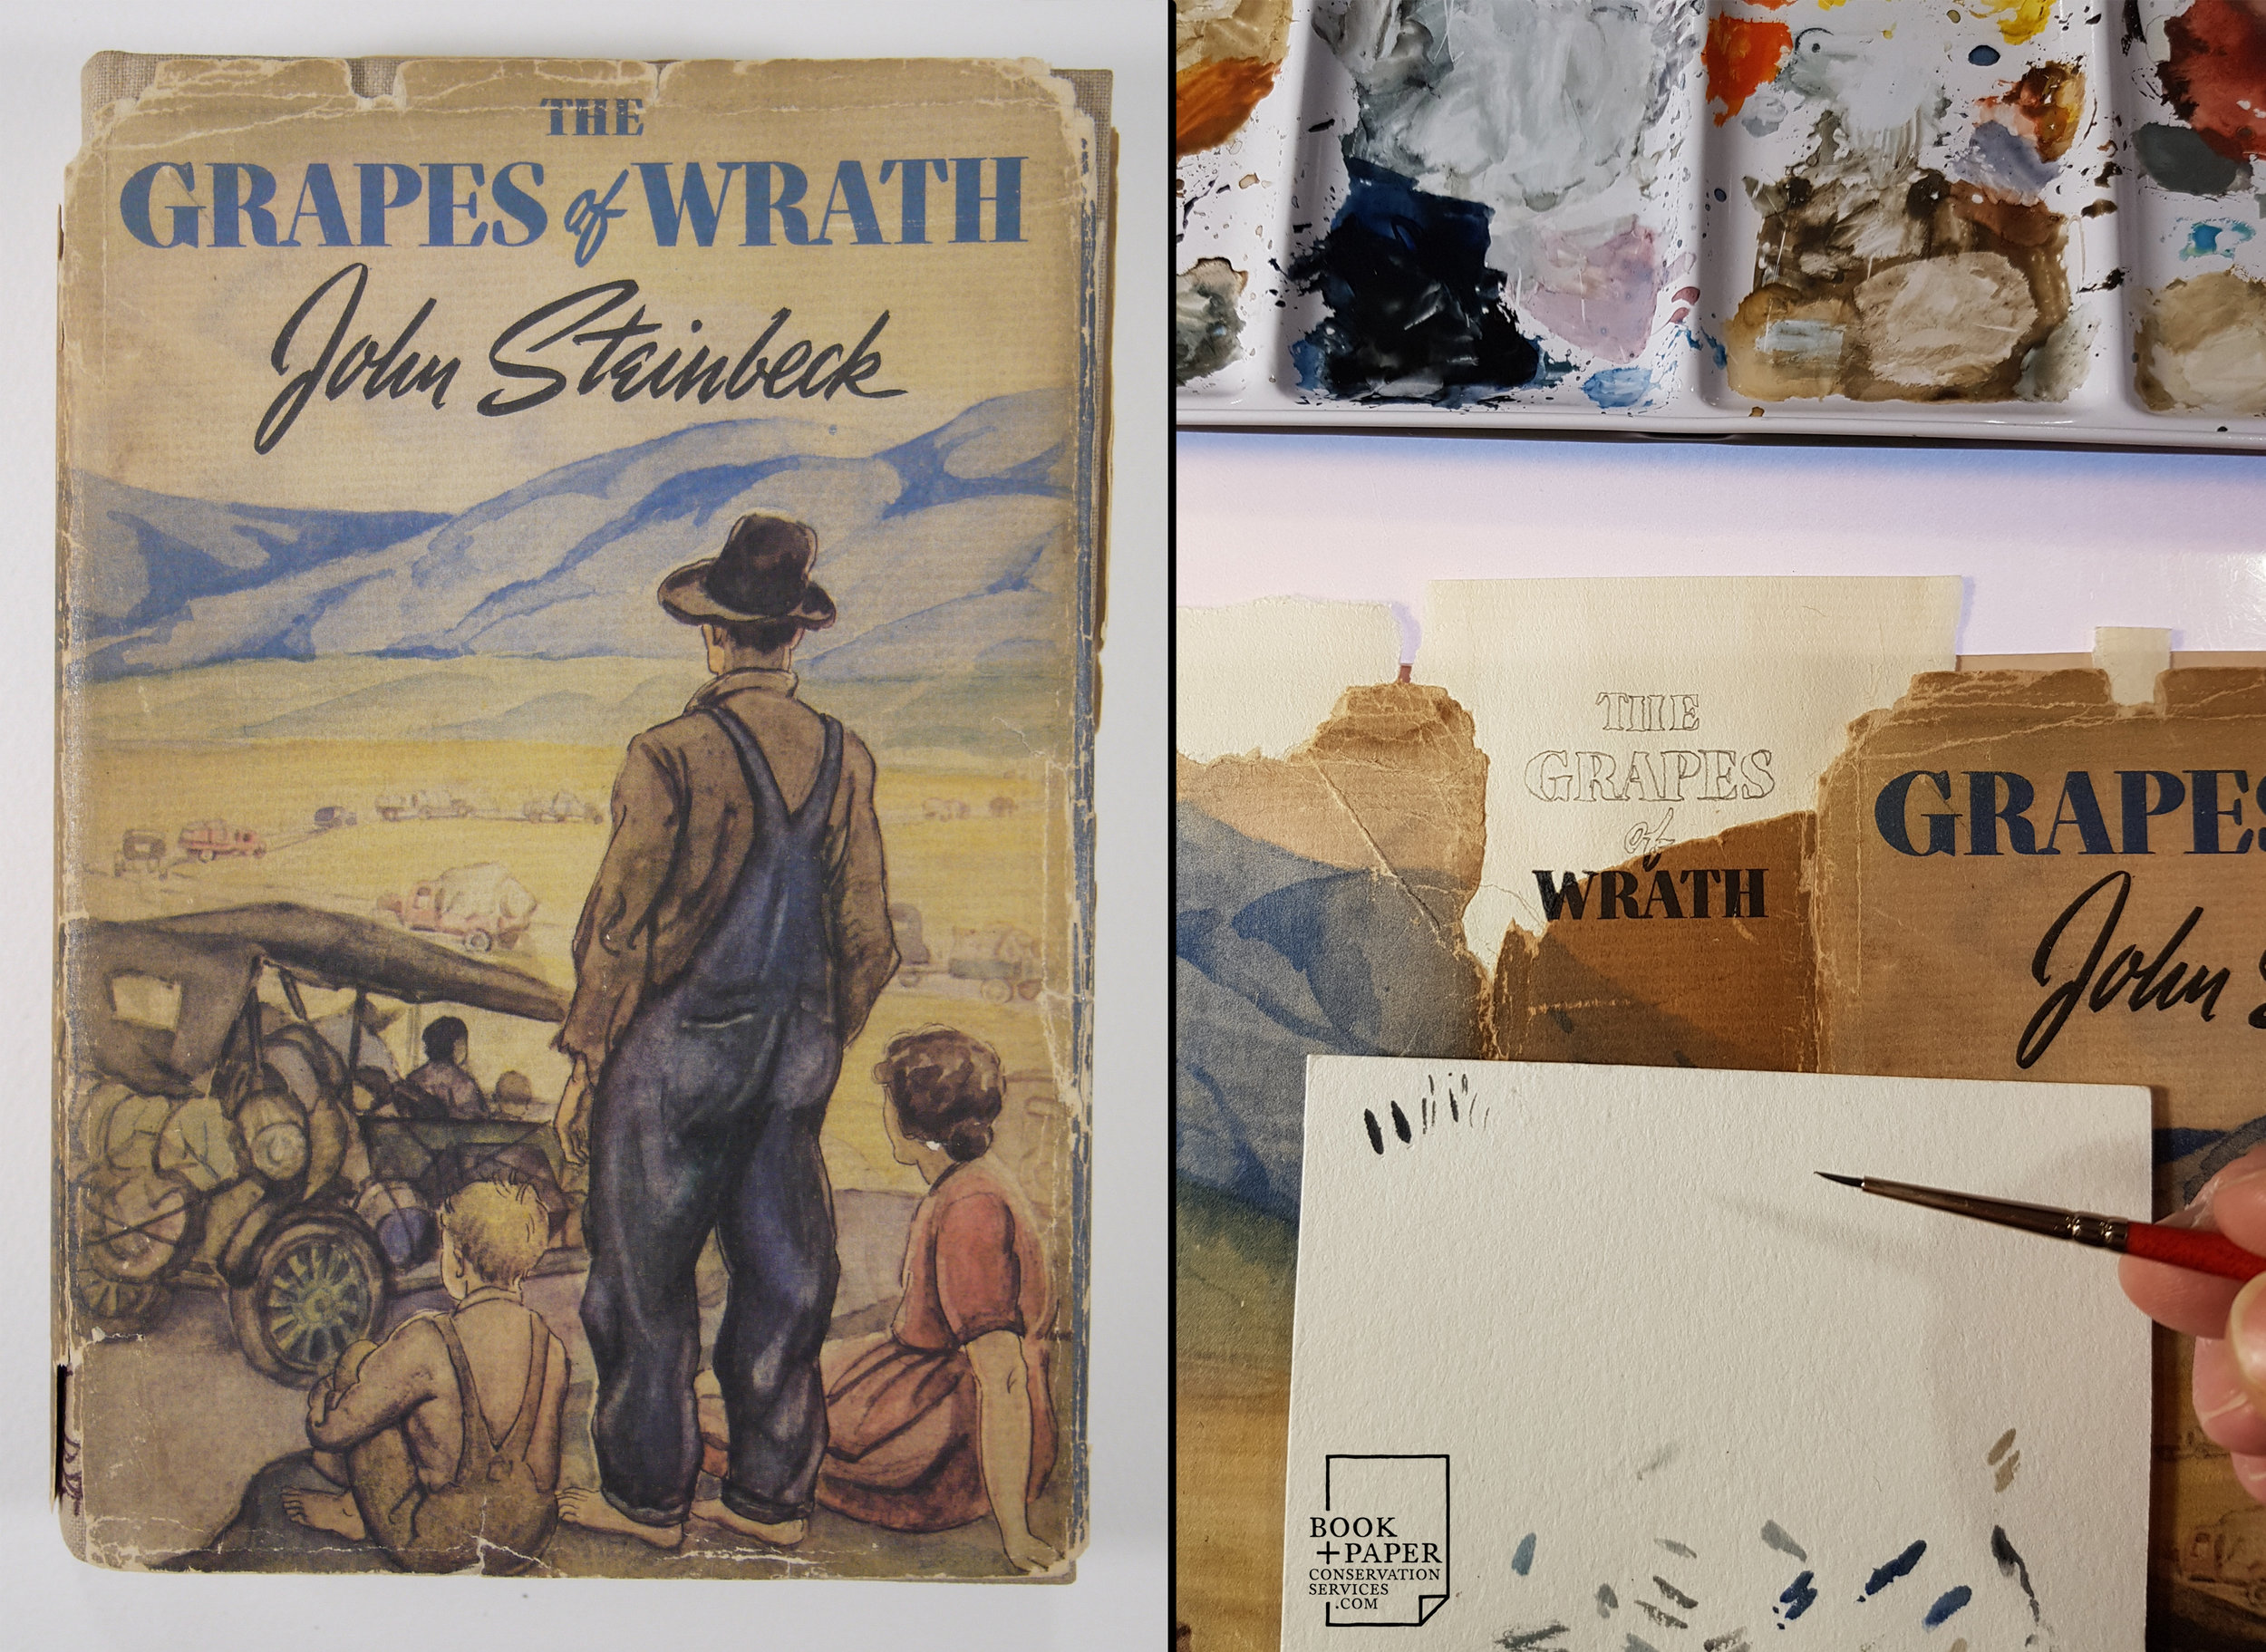 Restoration of the dust jacket of a 1st edition Grapes of Wrath by John Steinbeck.